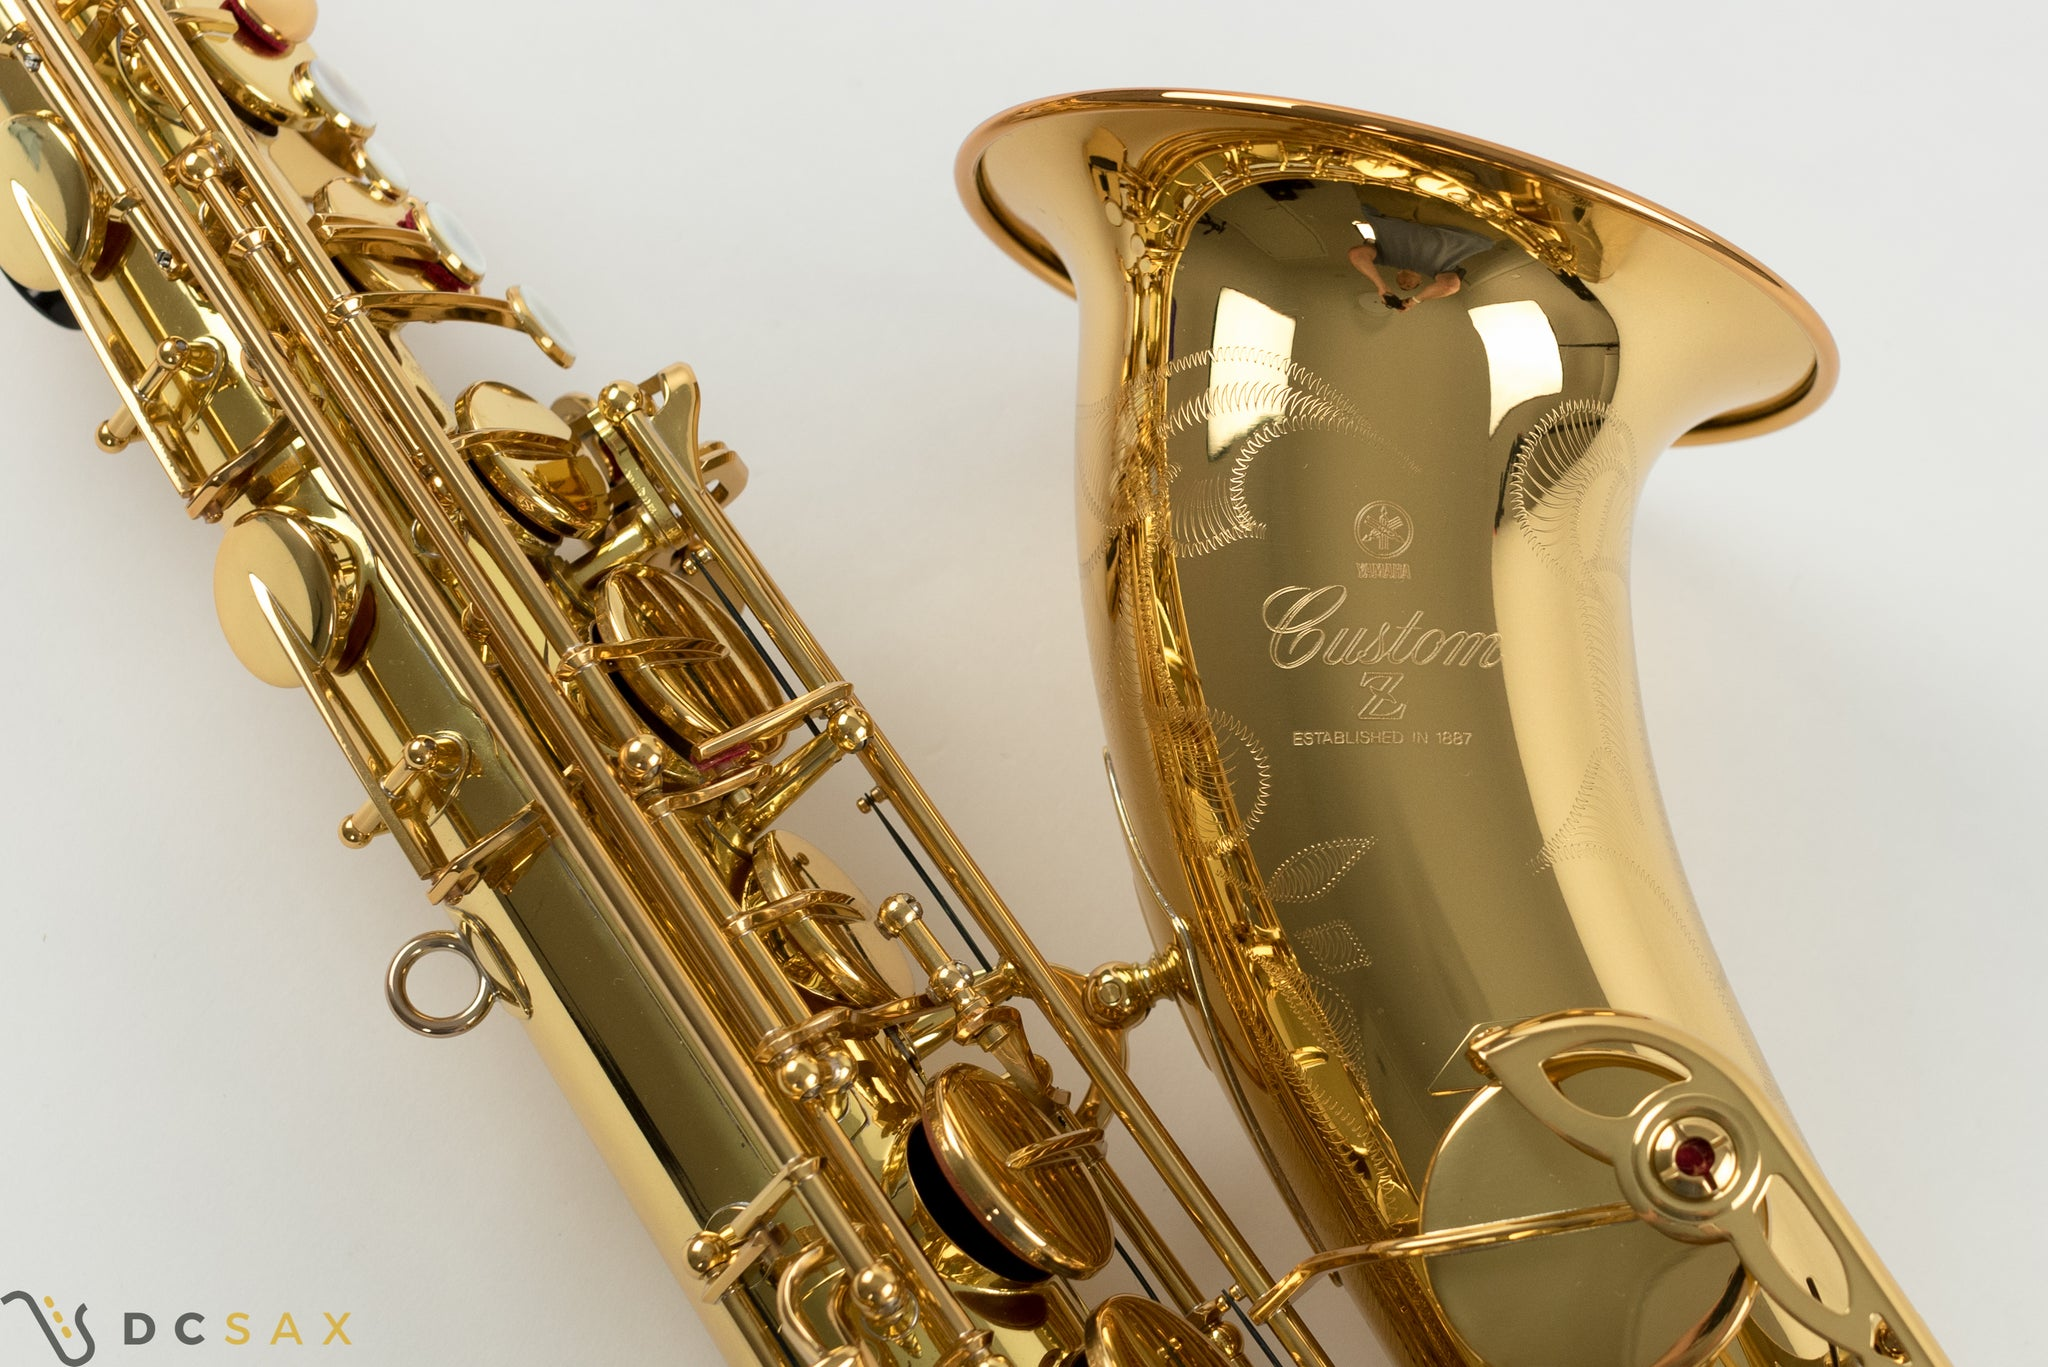 Yamaha Custom 82Z Tenor Saxophone, Like New